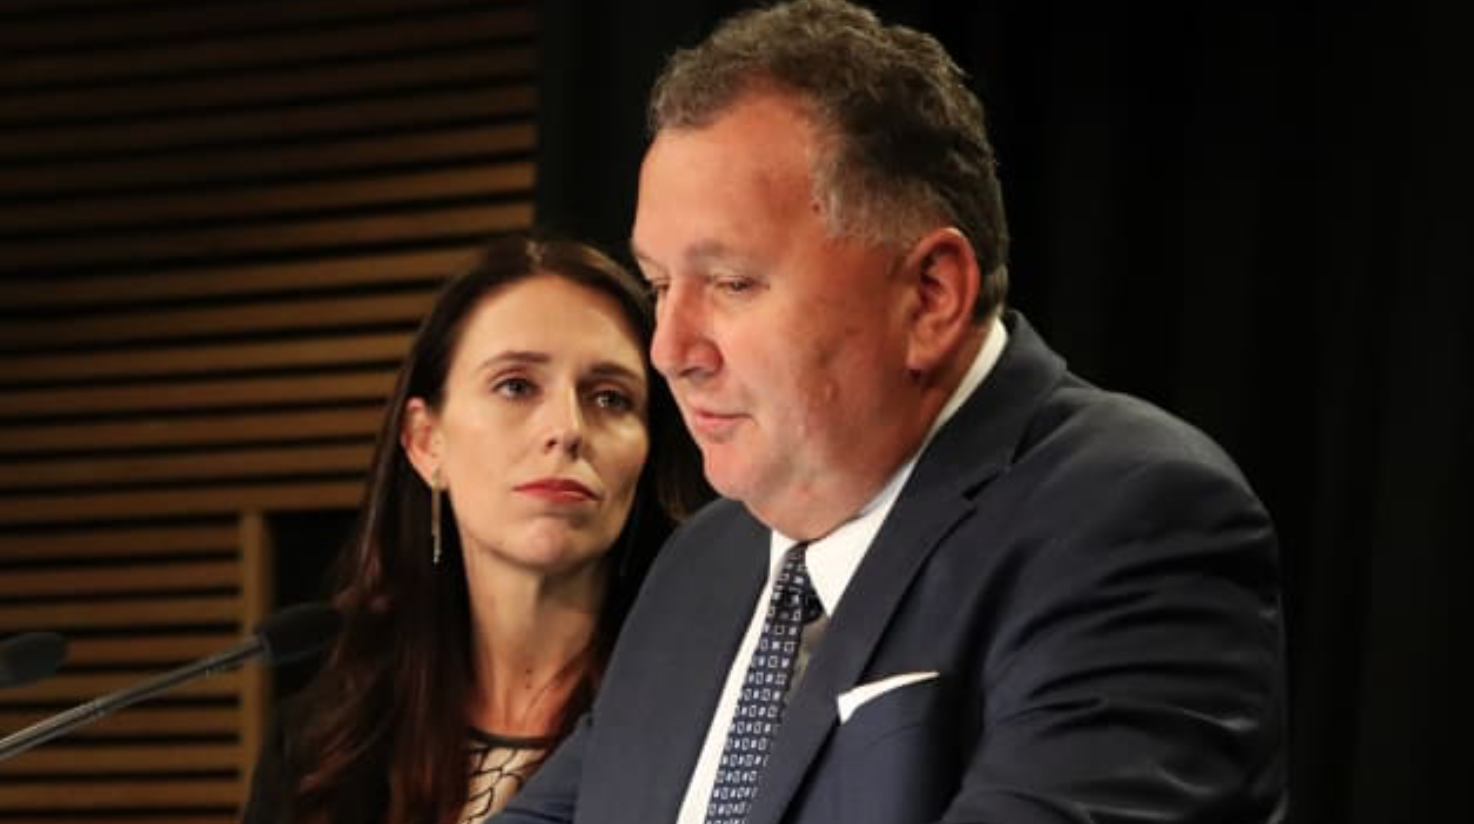 Labour do righteous thing on arranged marriages, NZ as a multicultural society & real tragedy of Shane Jones Bollywood Drama | The Daily Blog